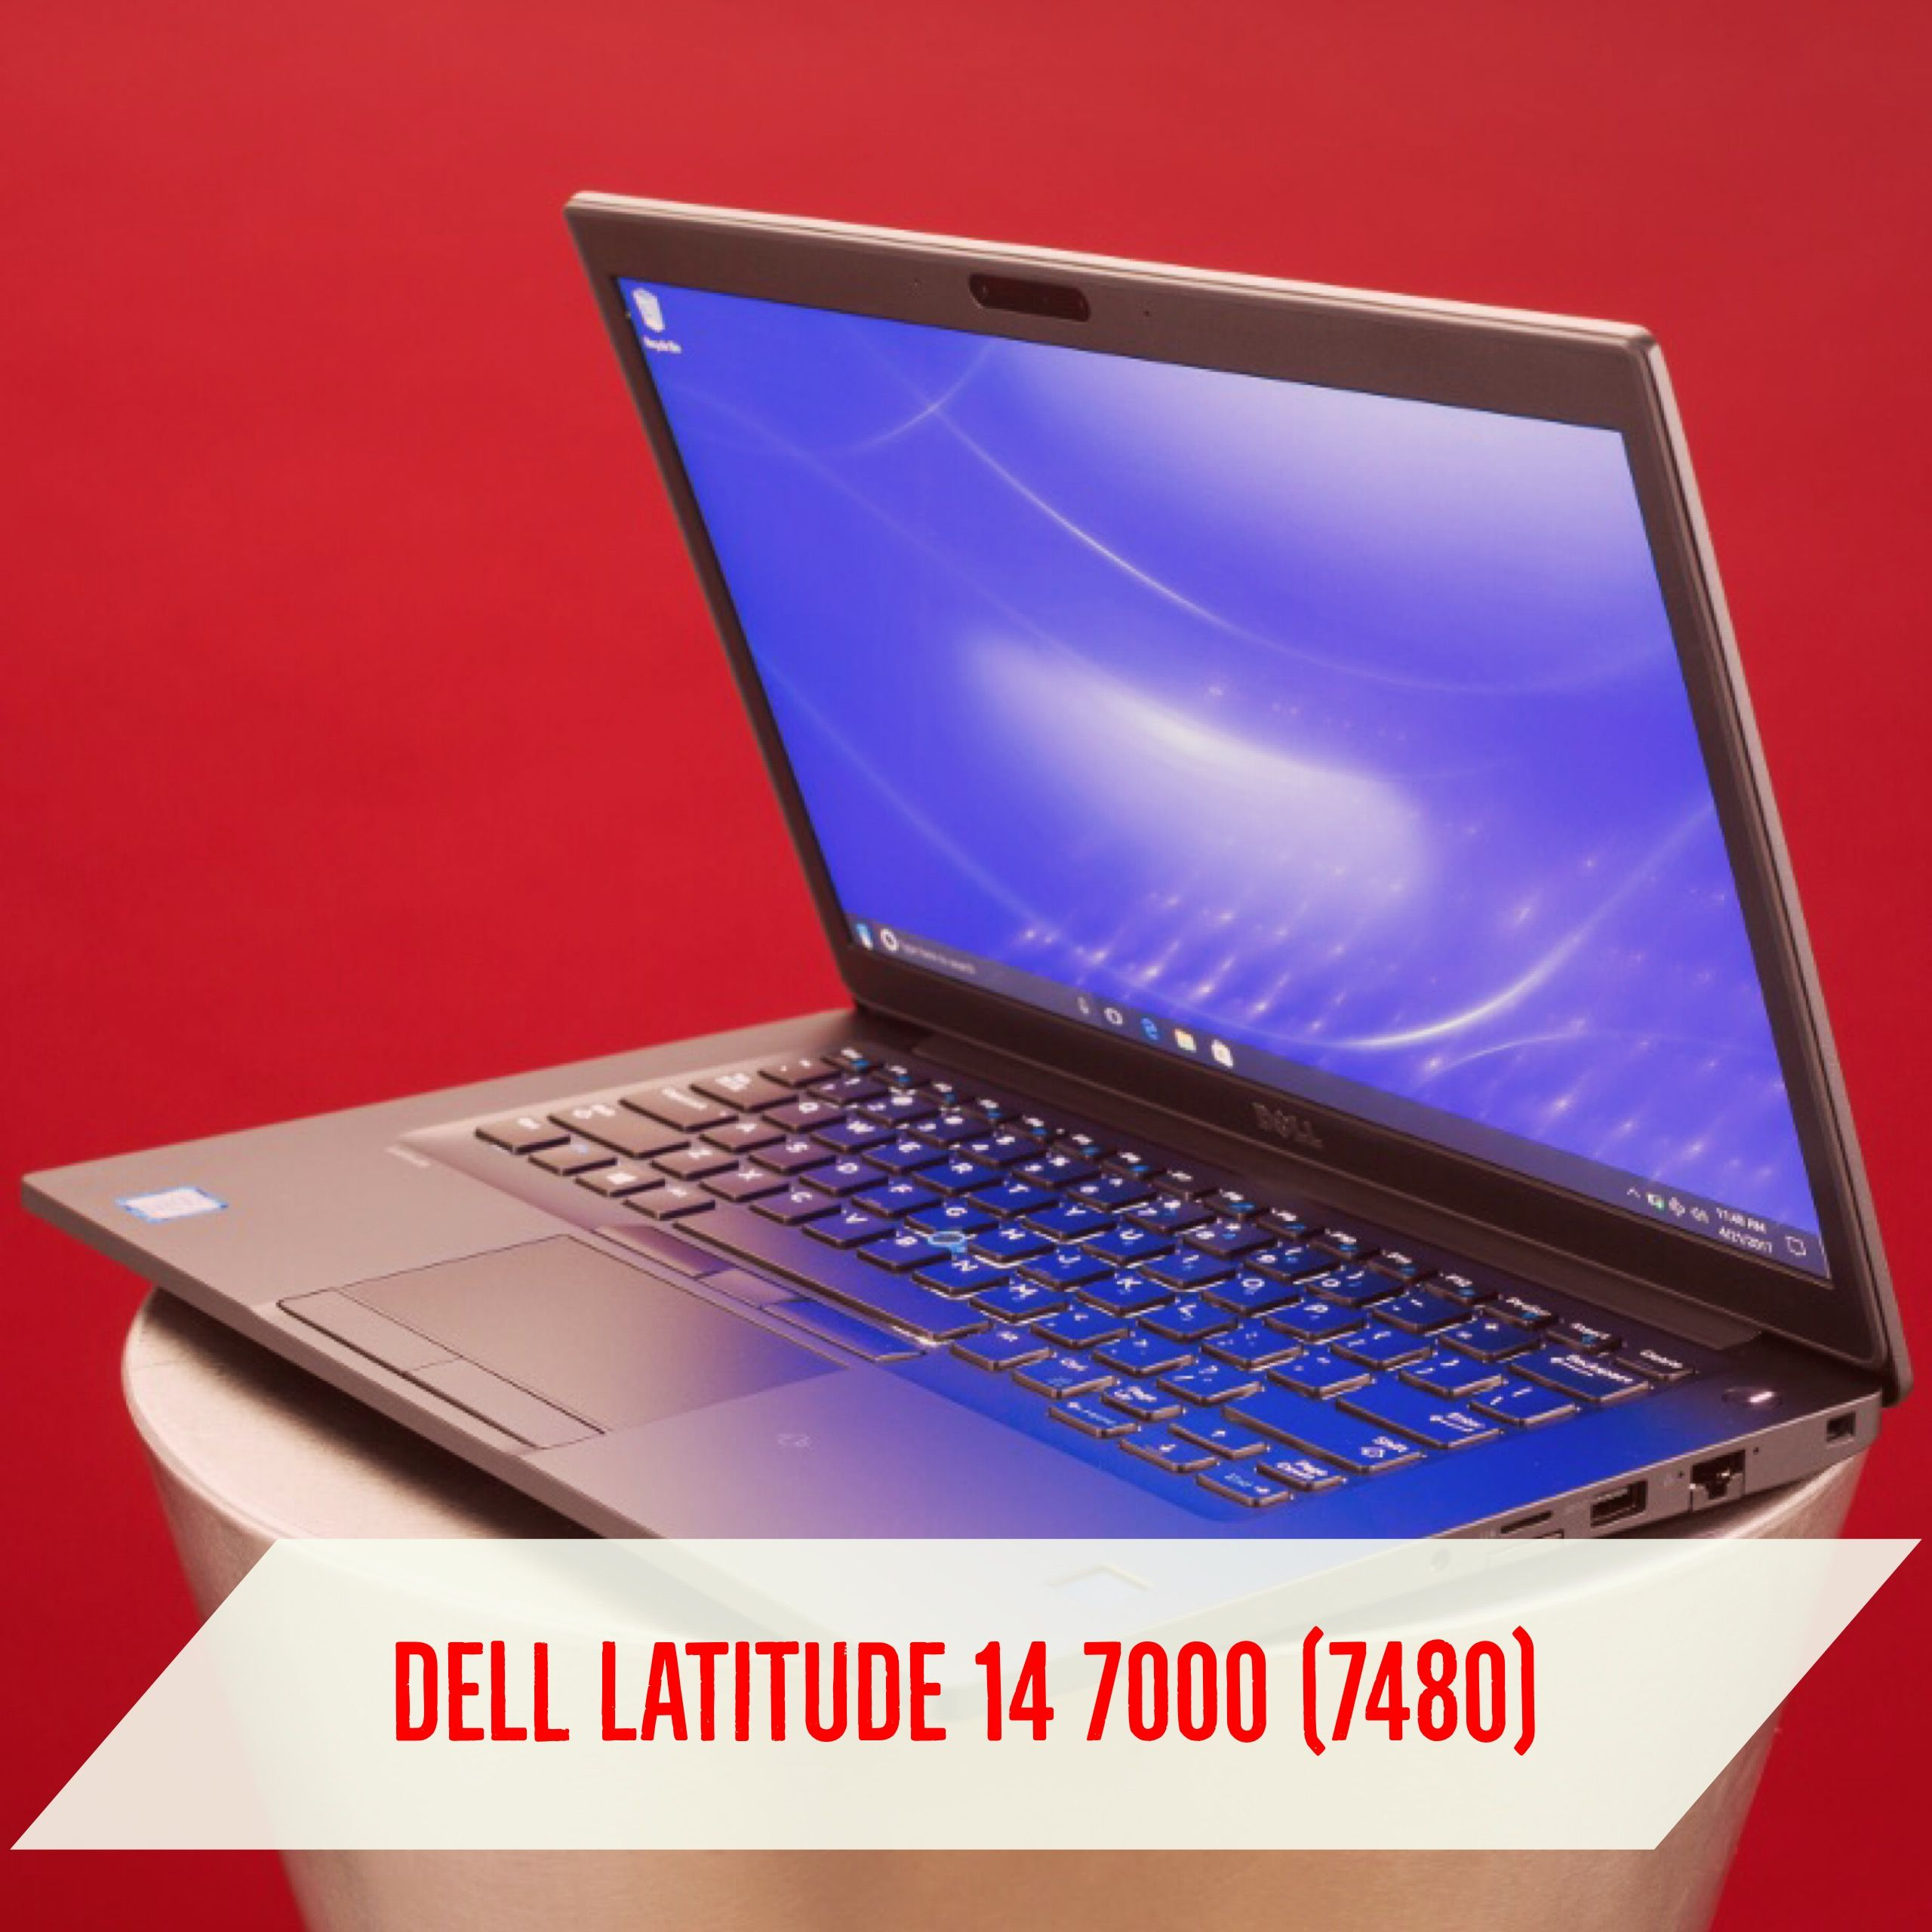 How is the laptop configured